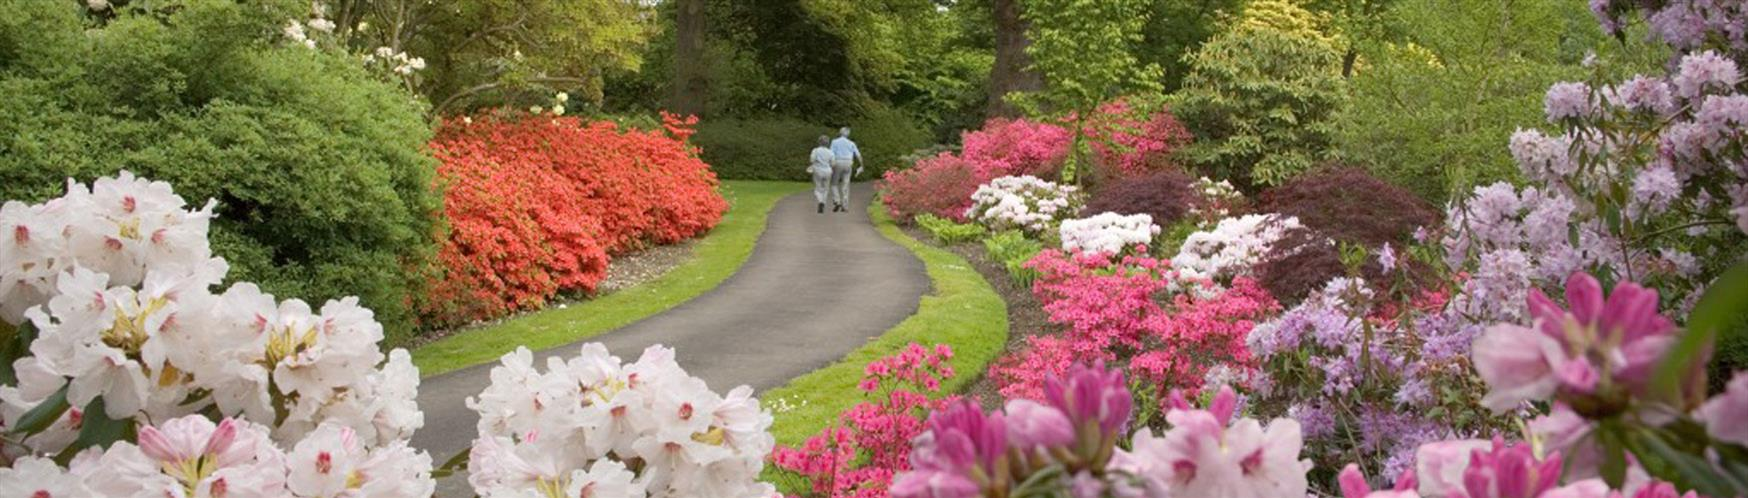 10 places to find the best spring flowers in surrey visit surrey the savill garden is pretty special place in spring enjoy spring flowers mightylinksfo